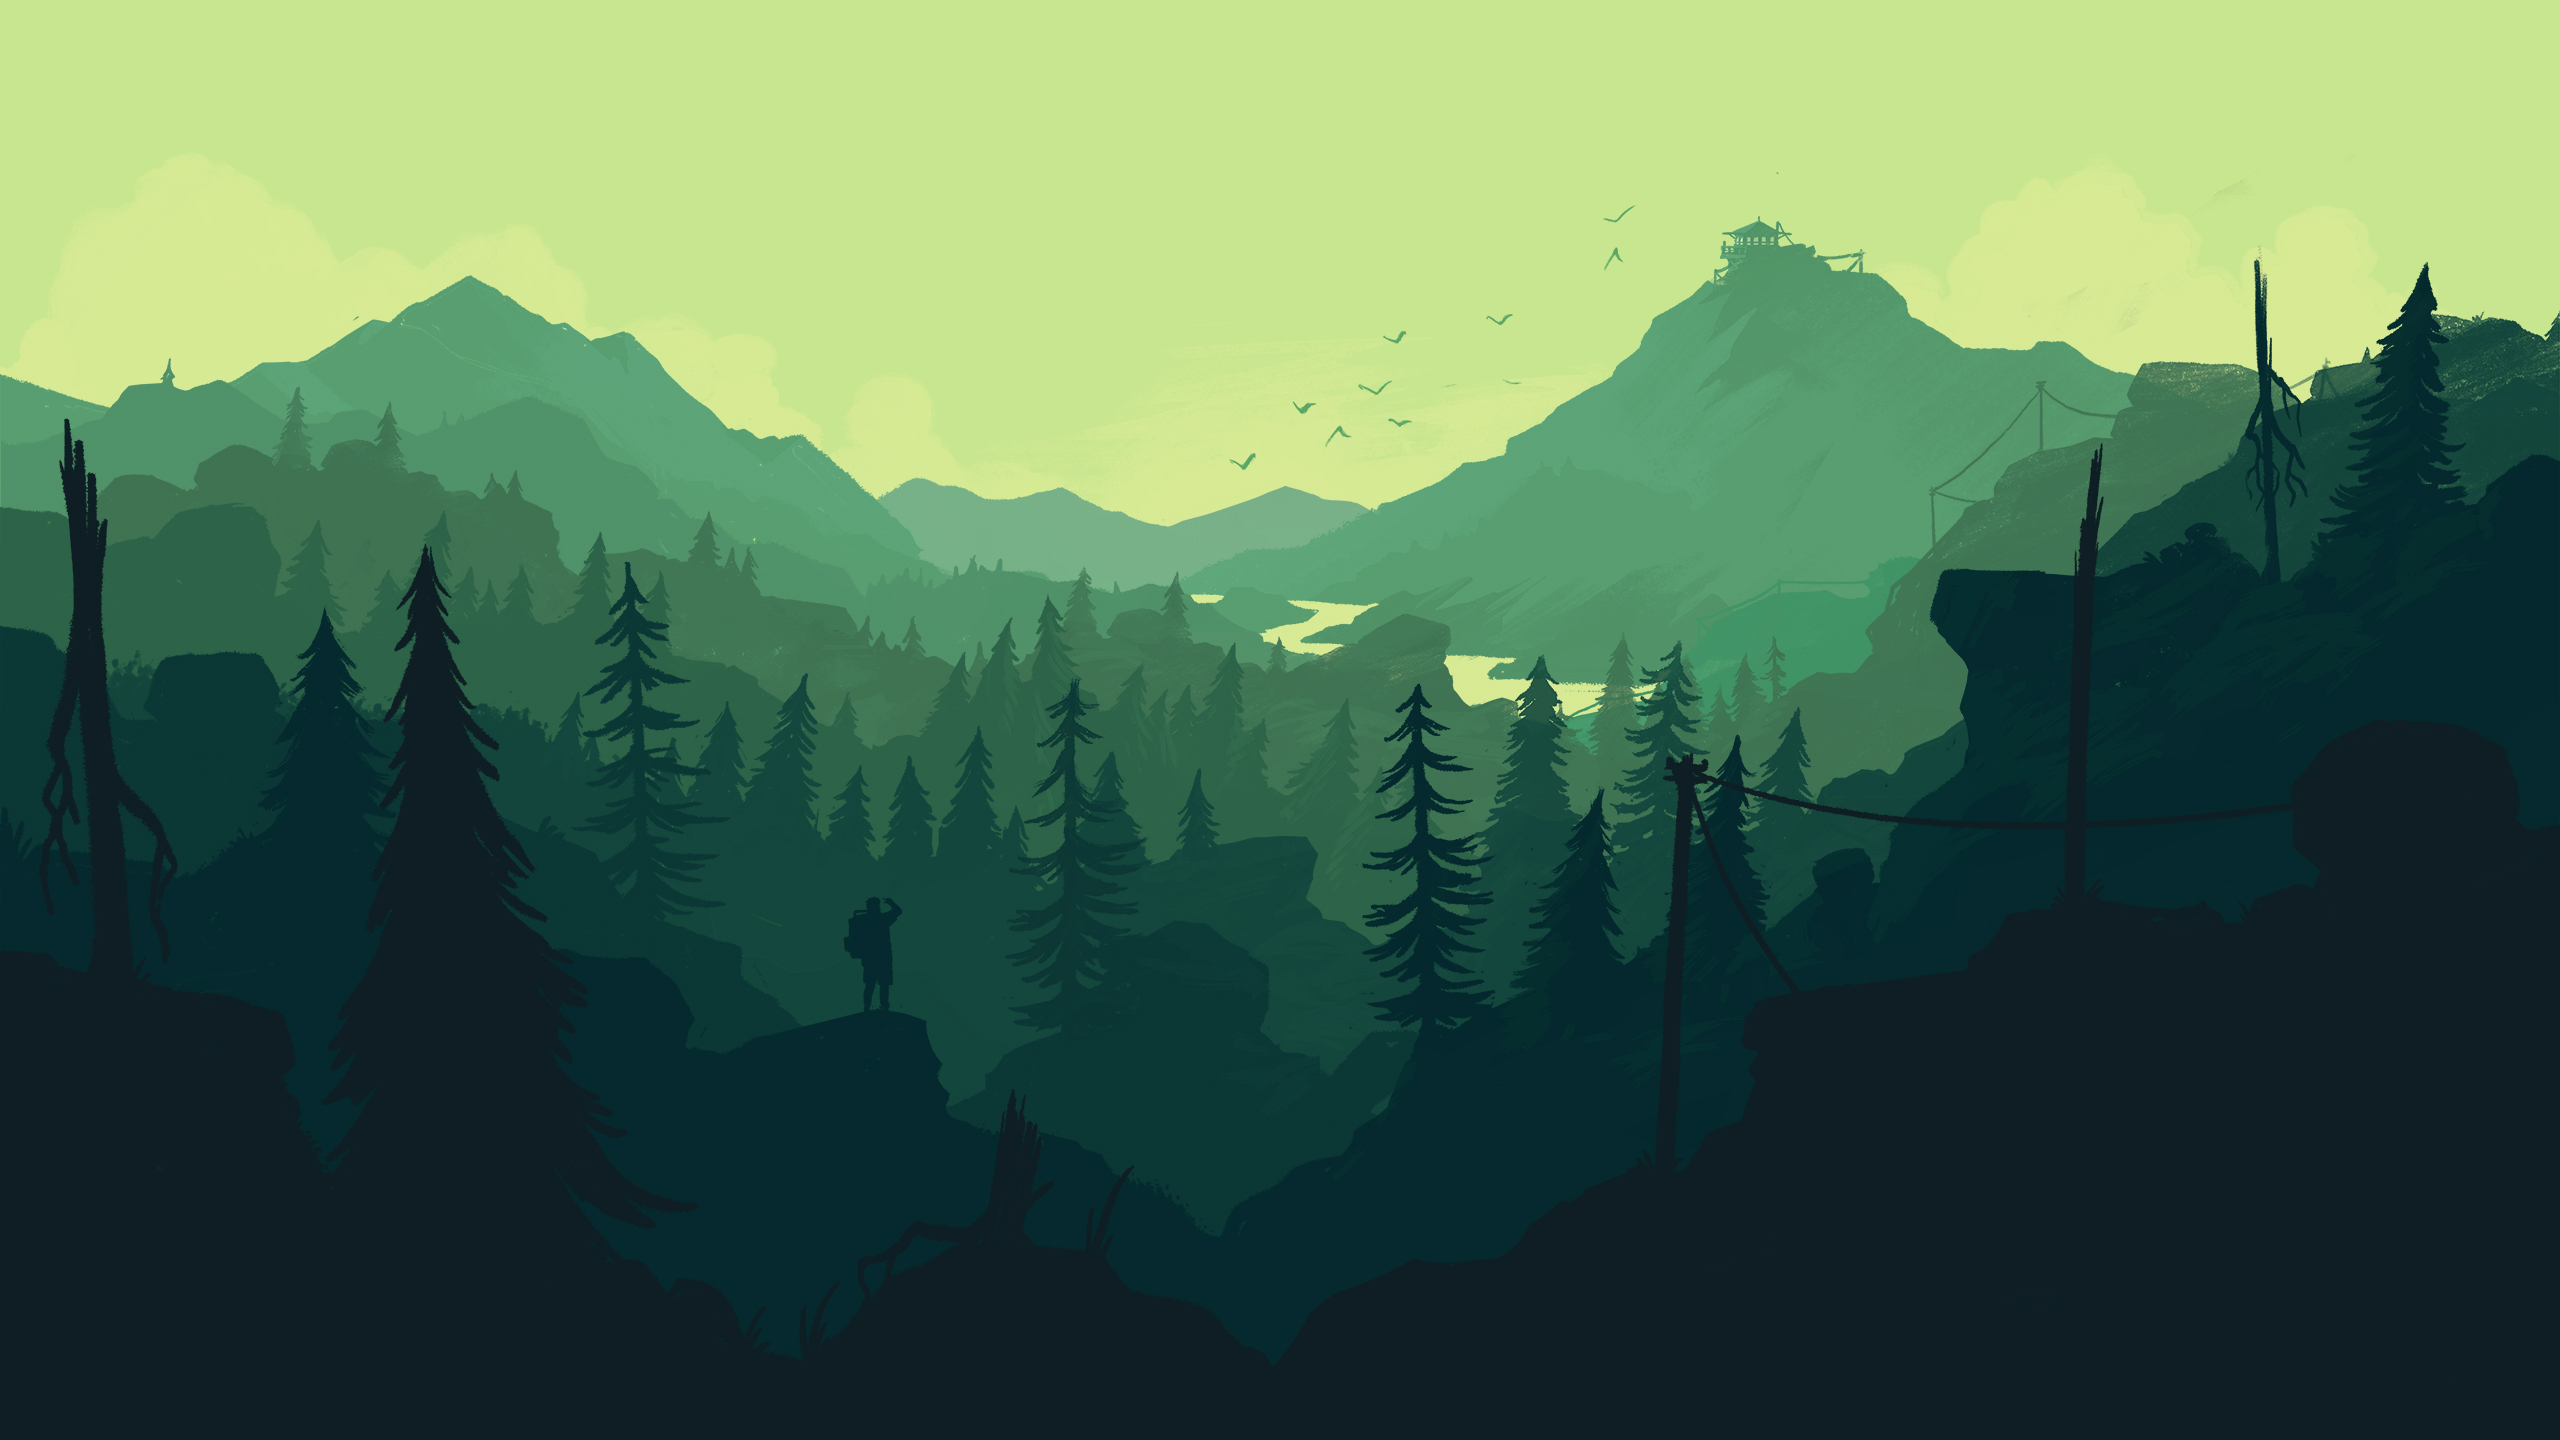 Firewatch Wallpaper desktop 2560x1440 green